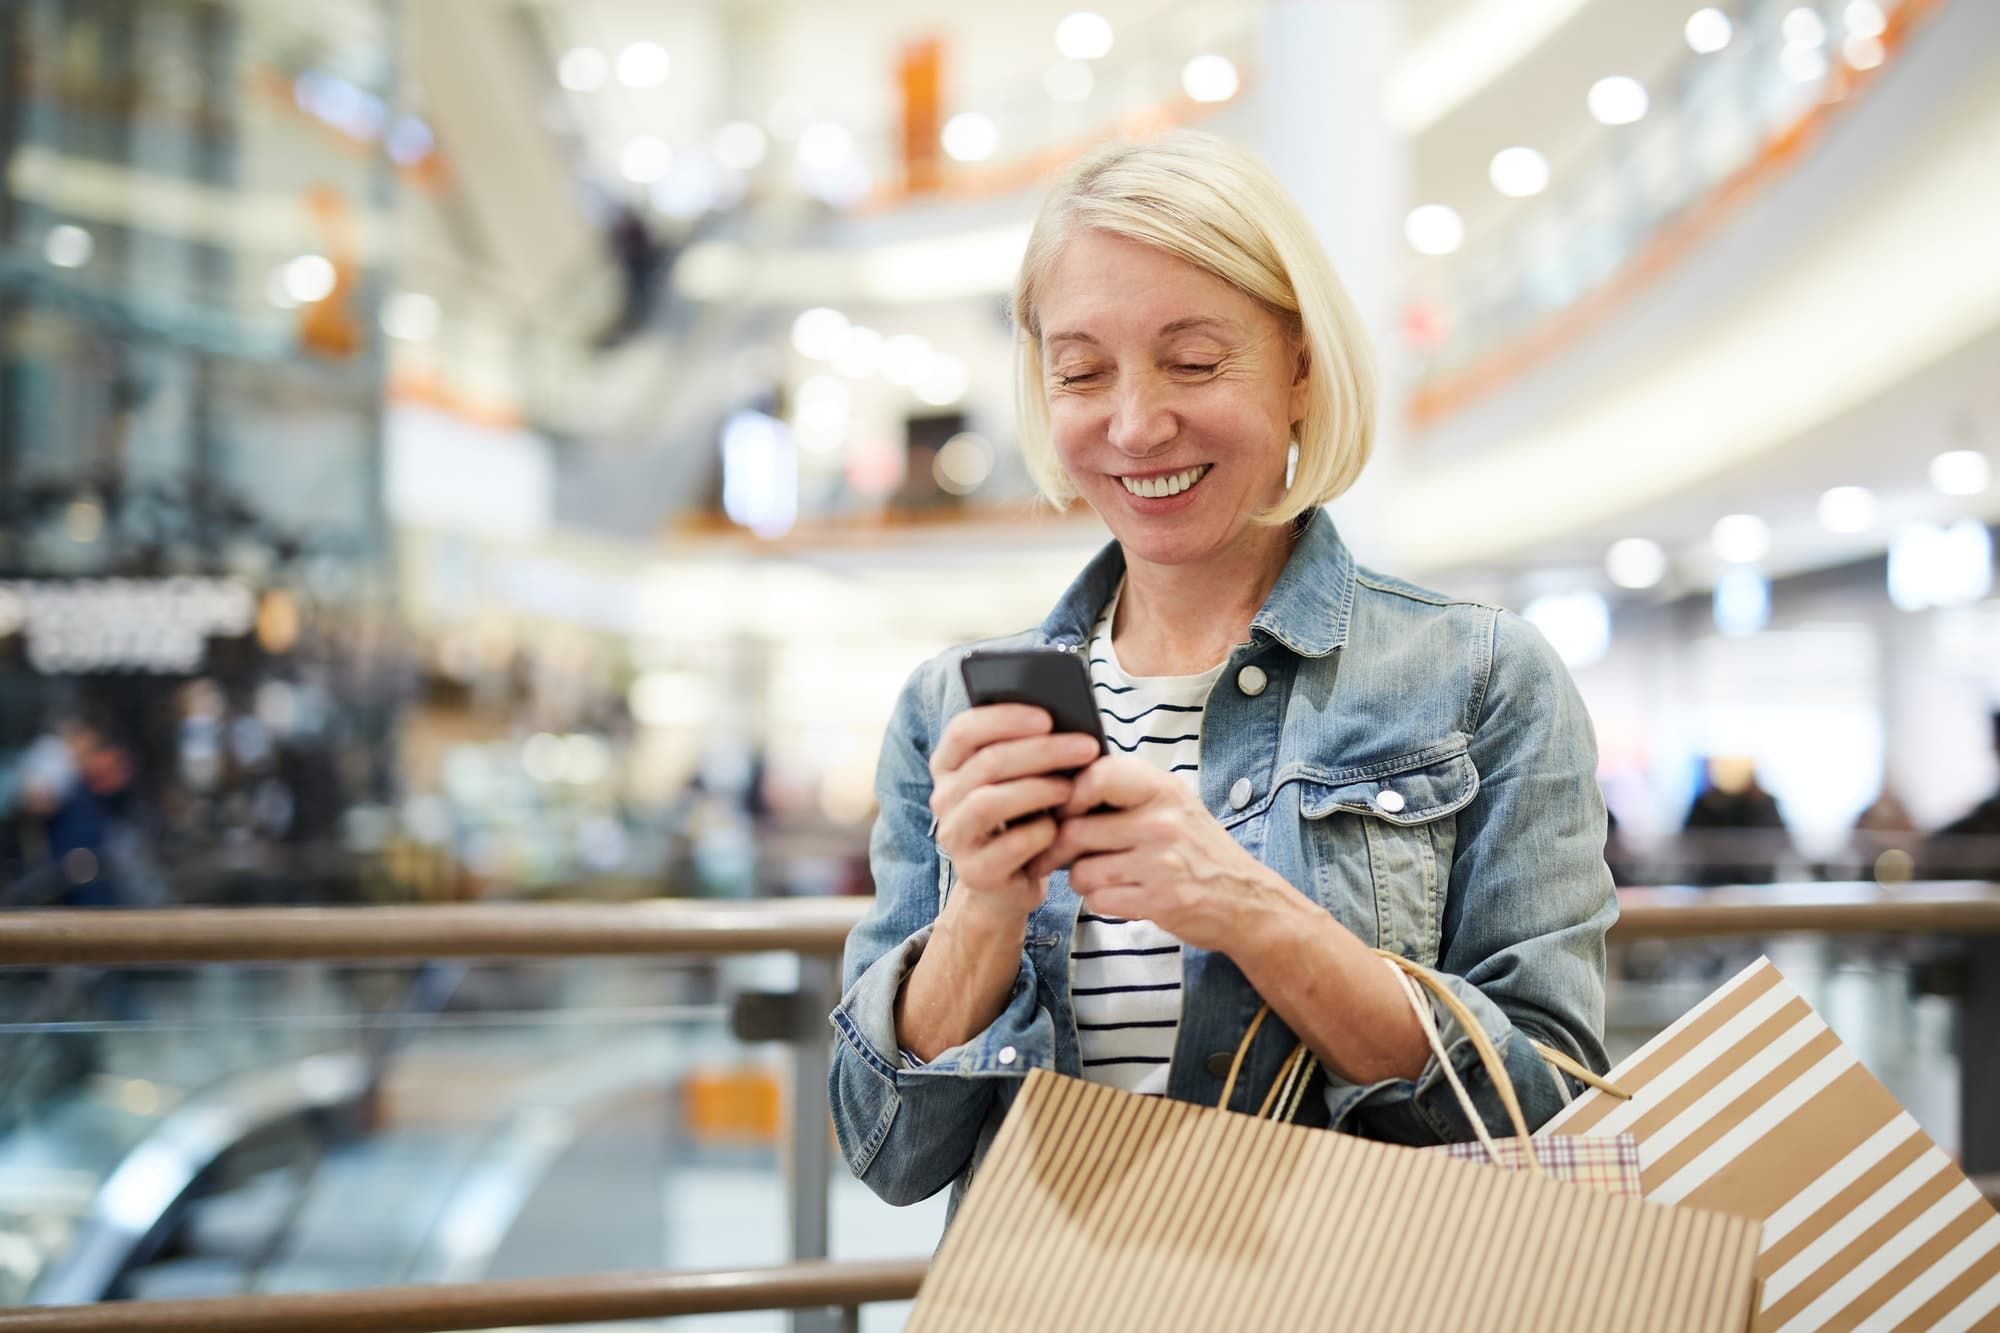 Happy woman texting sms in shopping mall